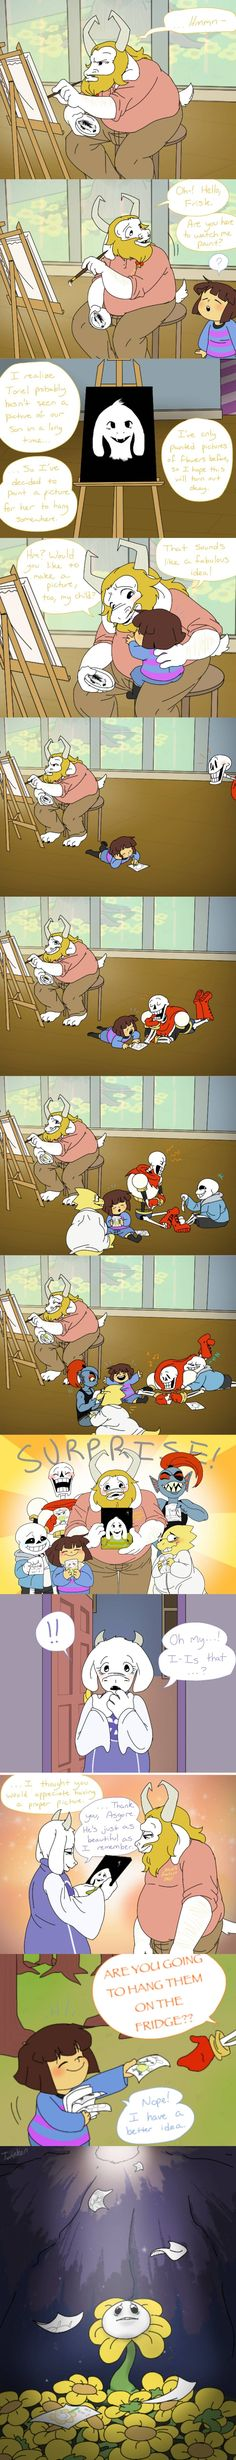 UNDERTALE EMOTIONS!